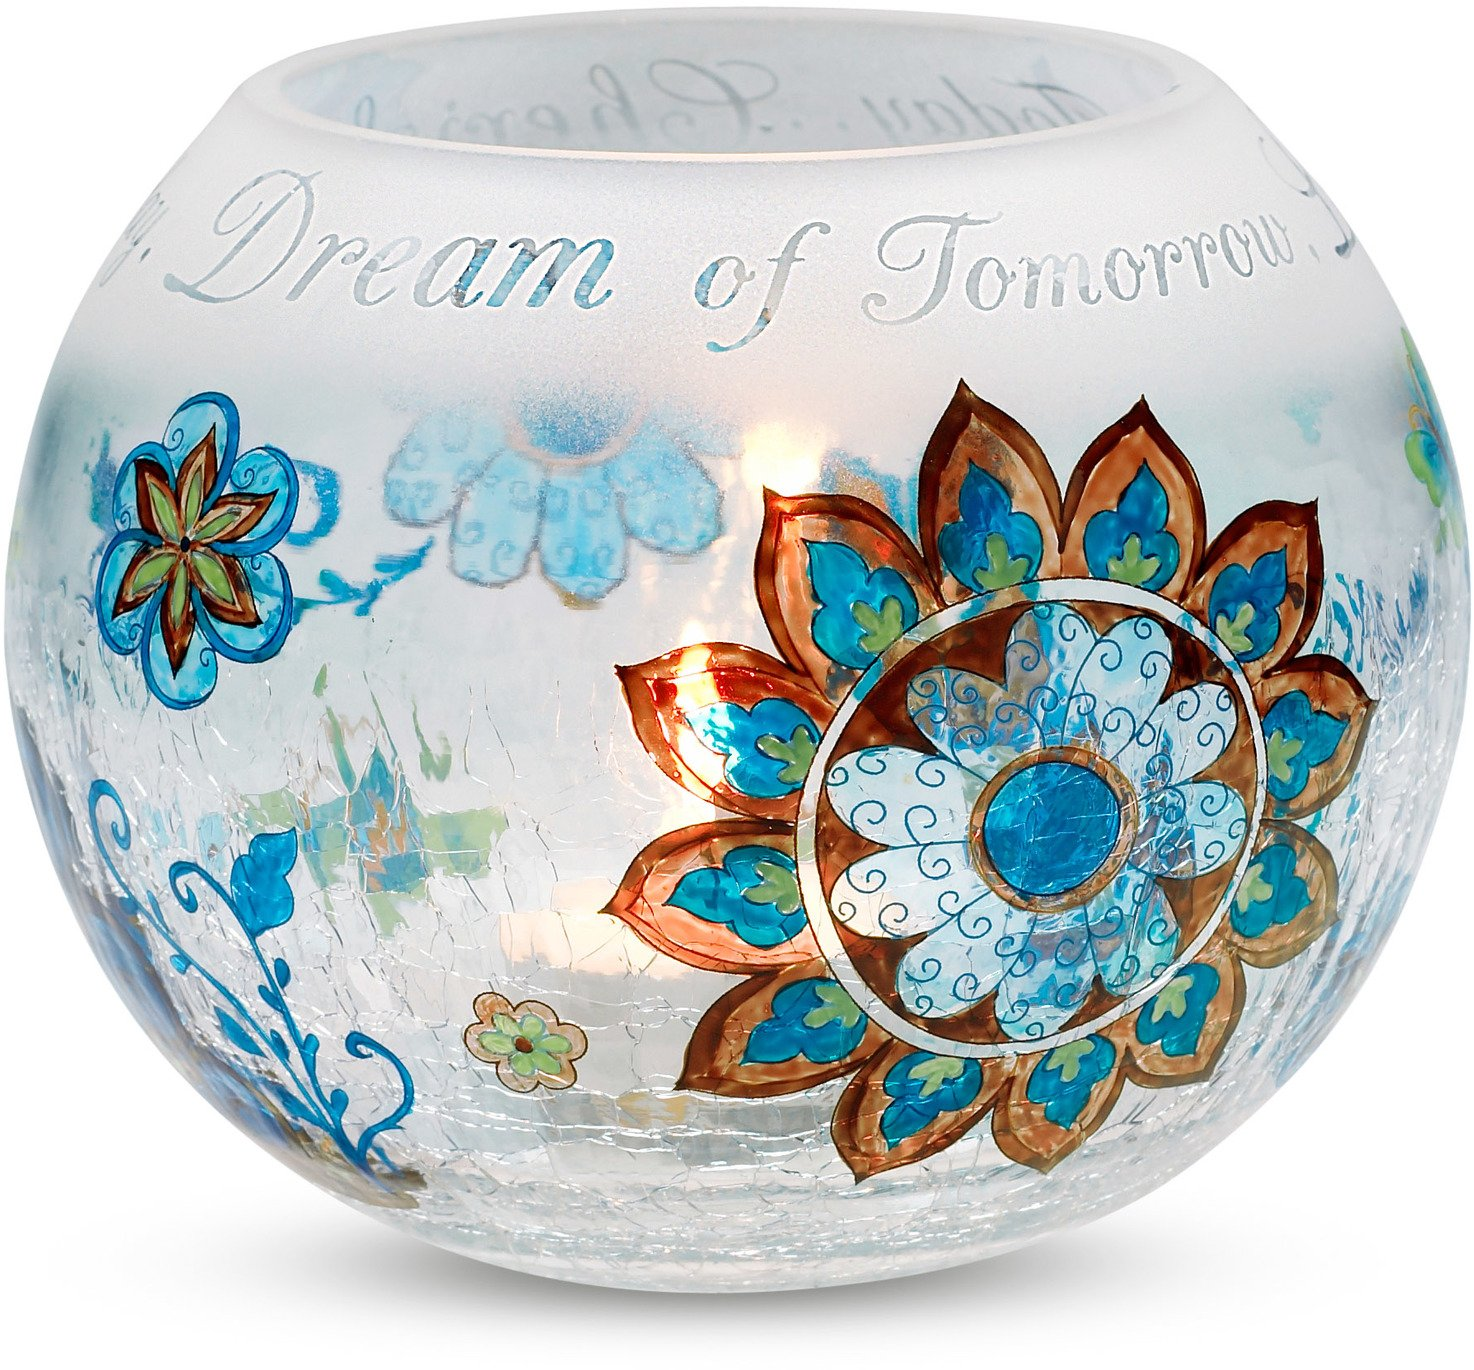 Perfectly Paisley Cherish Dream Live Crackled Glass Candle Holder, 5-Inch Round, Inspirational Saying